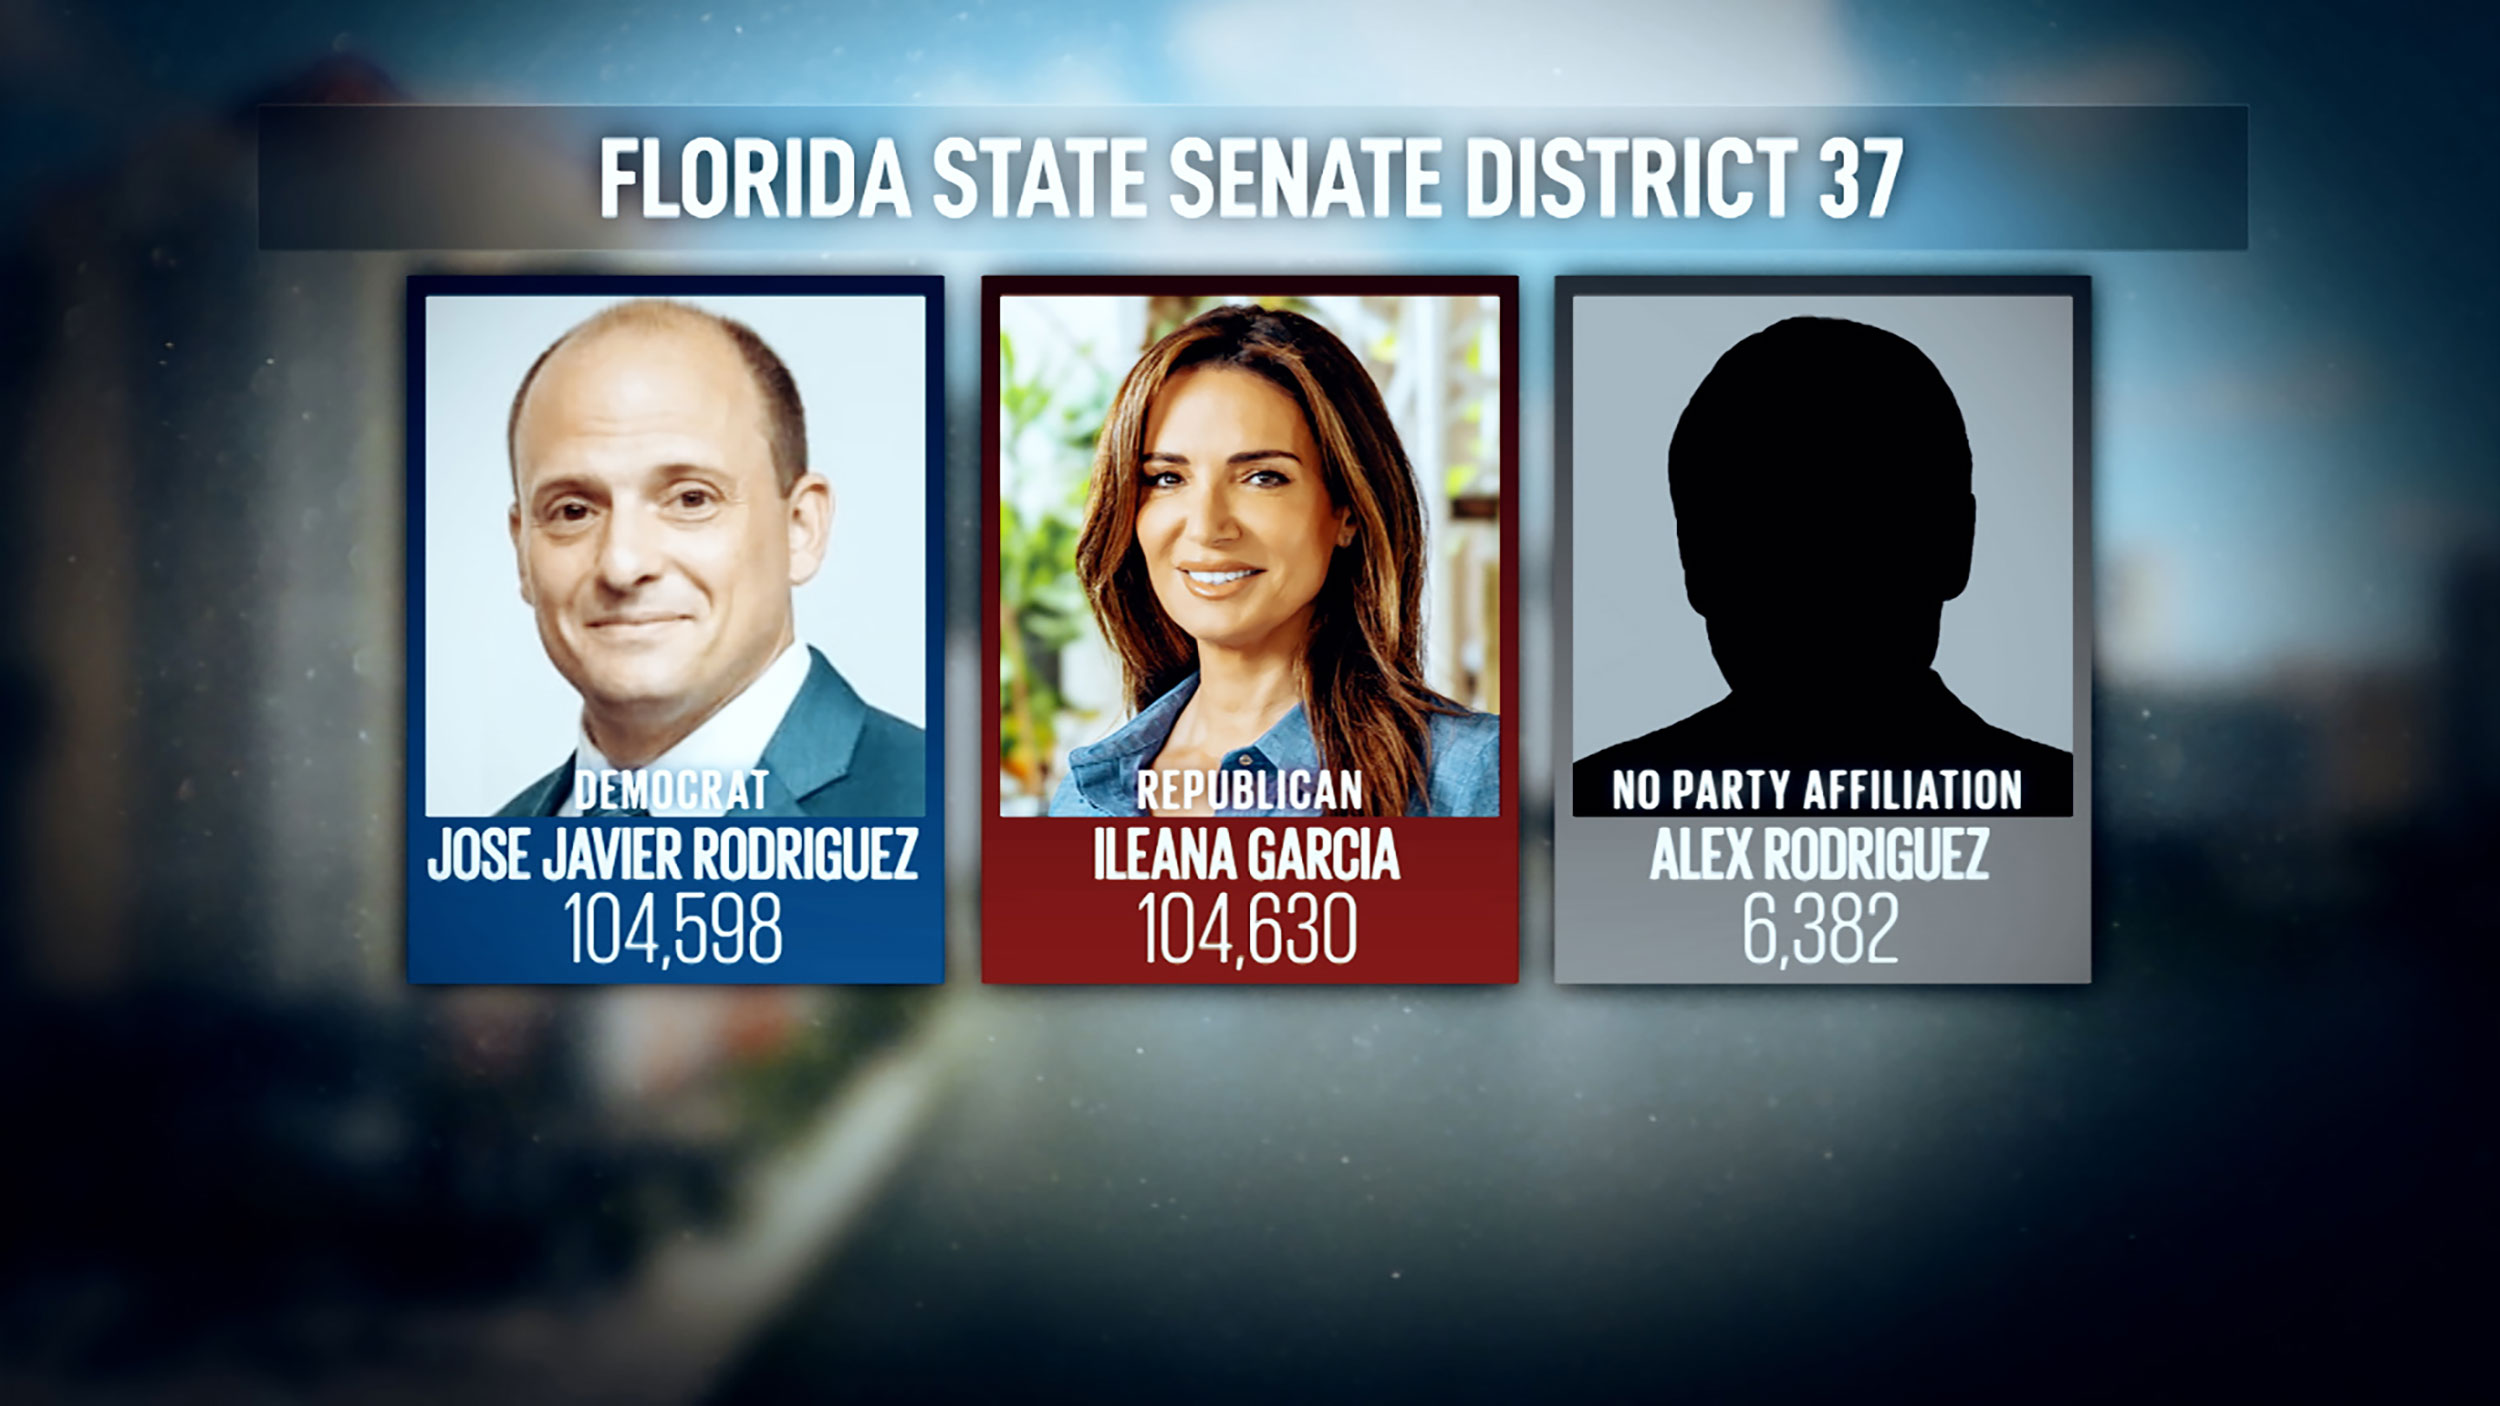 A dark money mystery in Florida centers on the campaign of a spoiler candidate who appeared to help a Republican win by 32 votes